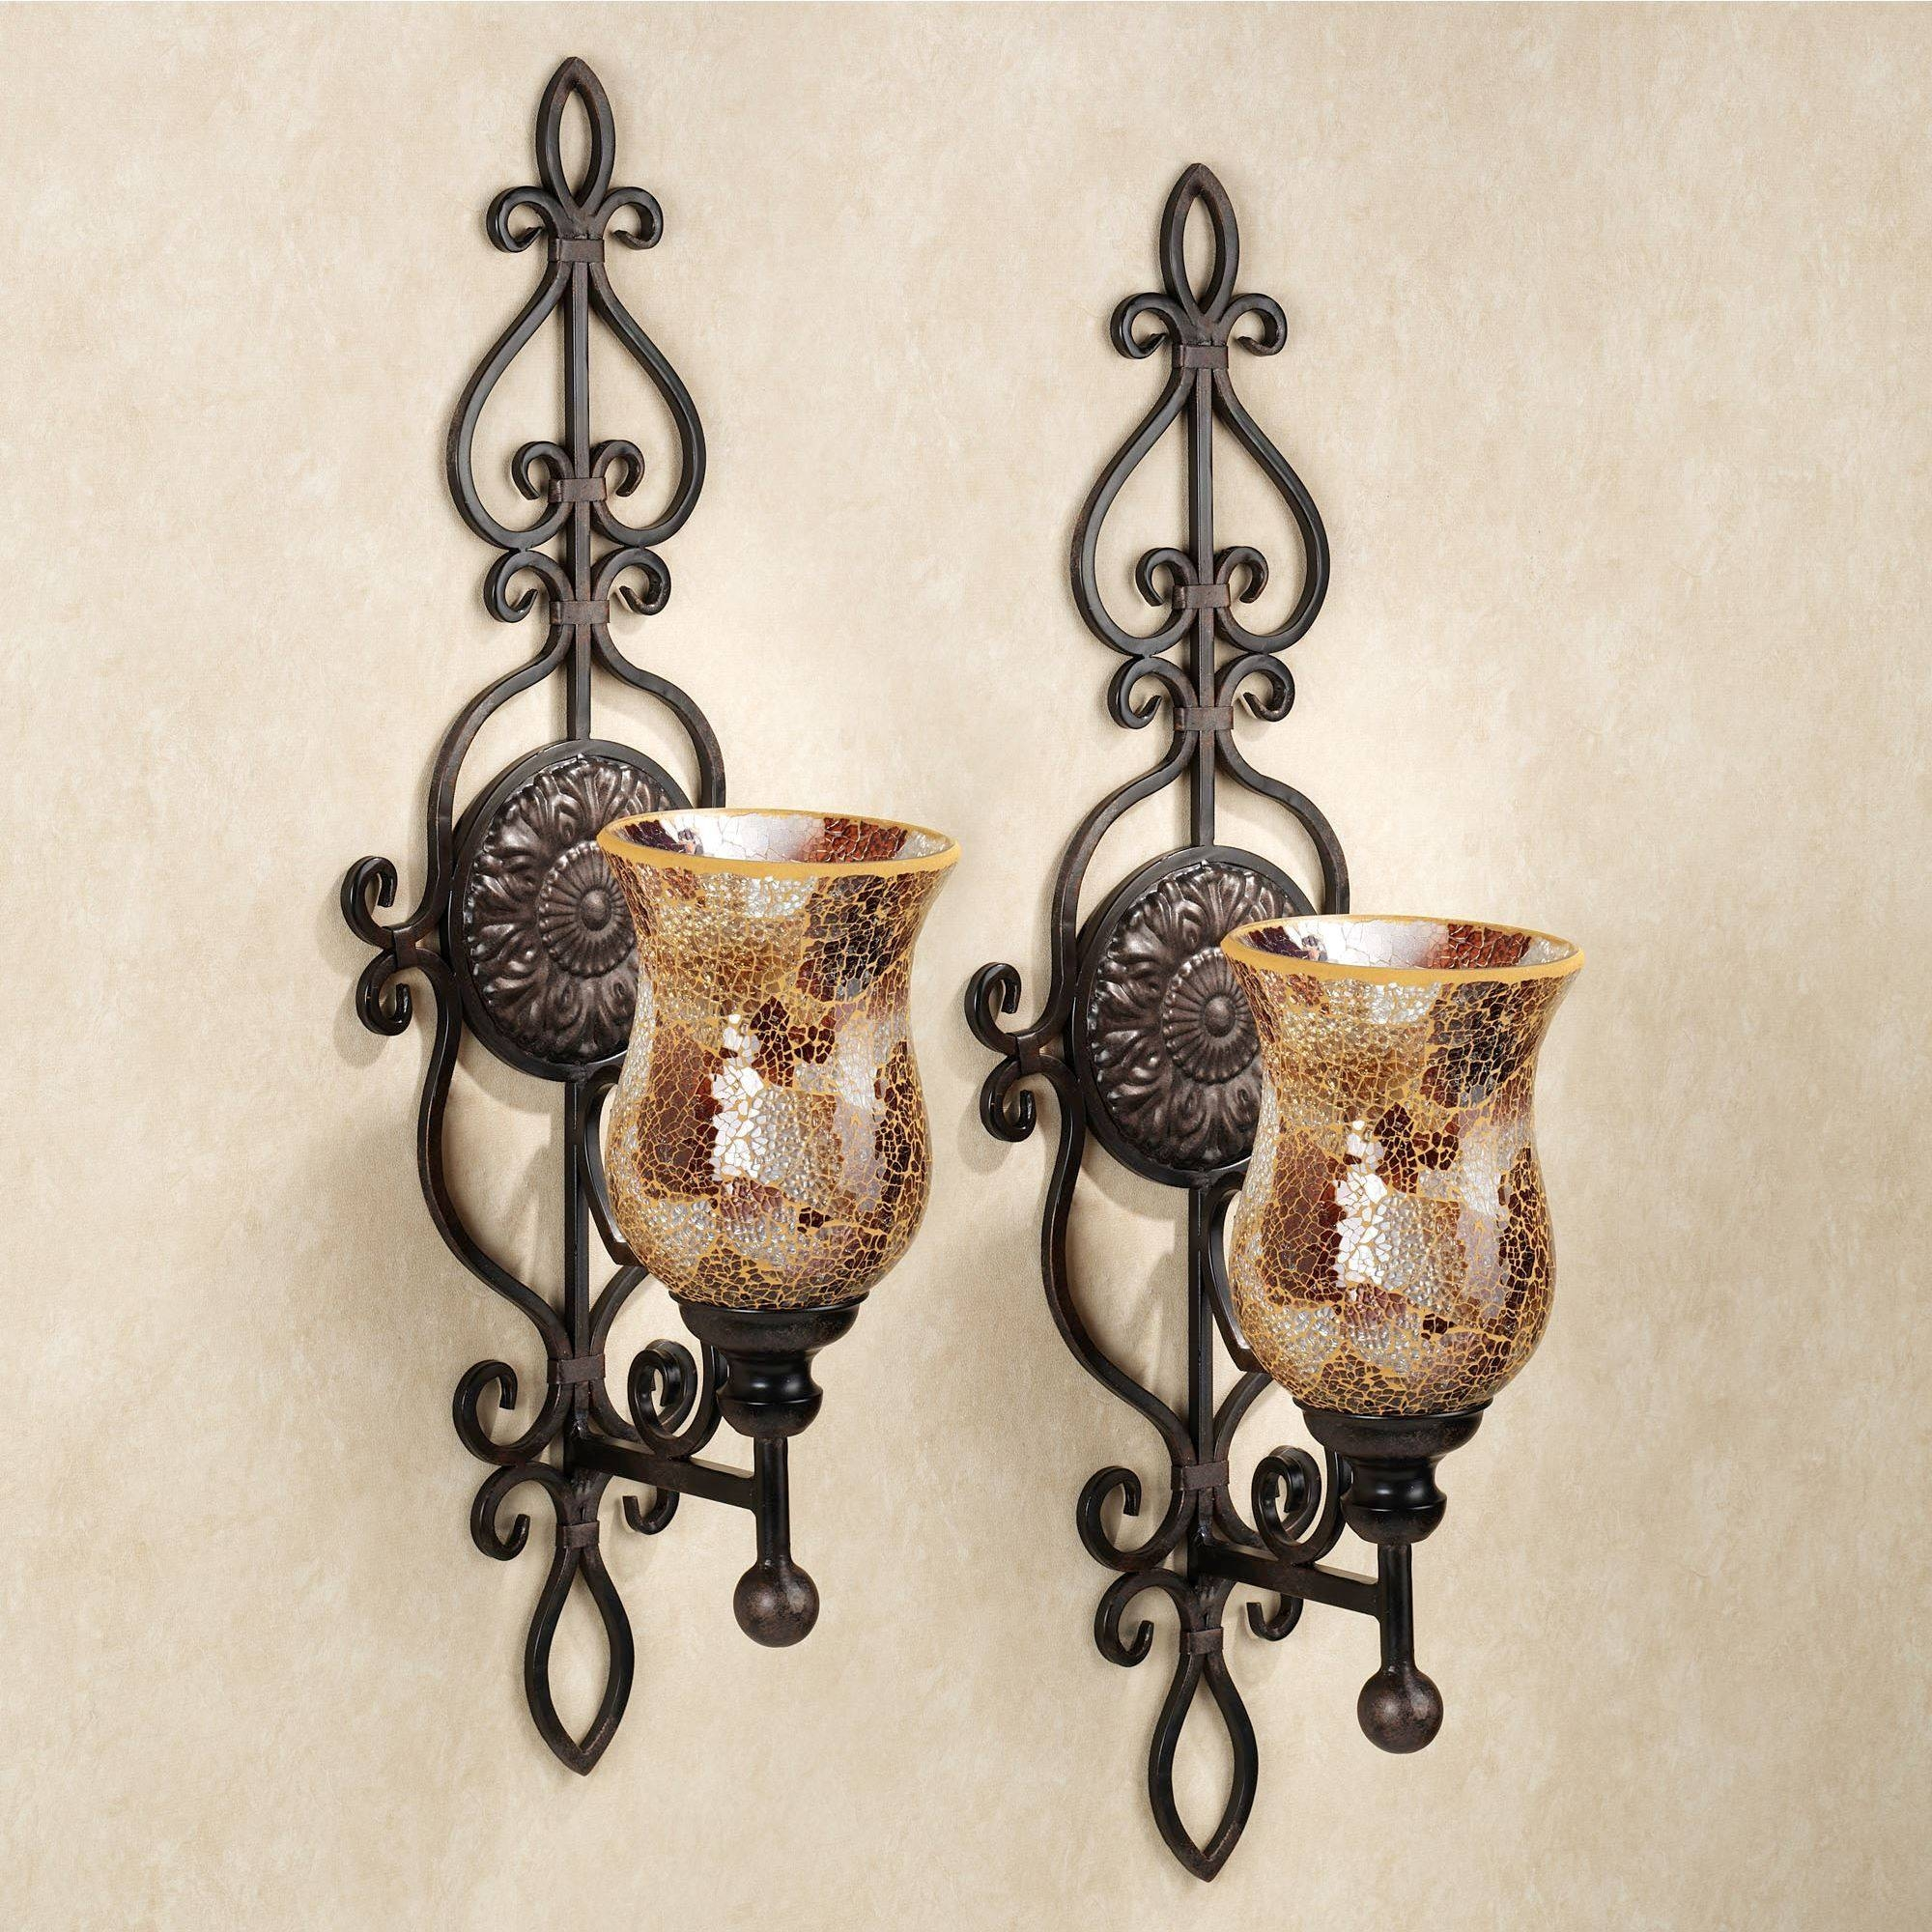 Leyanna Mosaic Aged Brown Wall Sconce Pair Inside Most Popular Metal Wall Art Candle Holder (View 16 of 20)